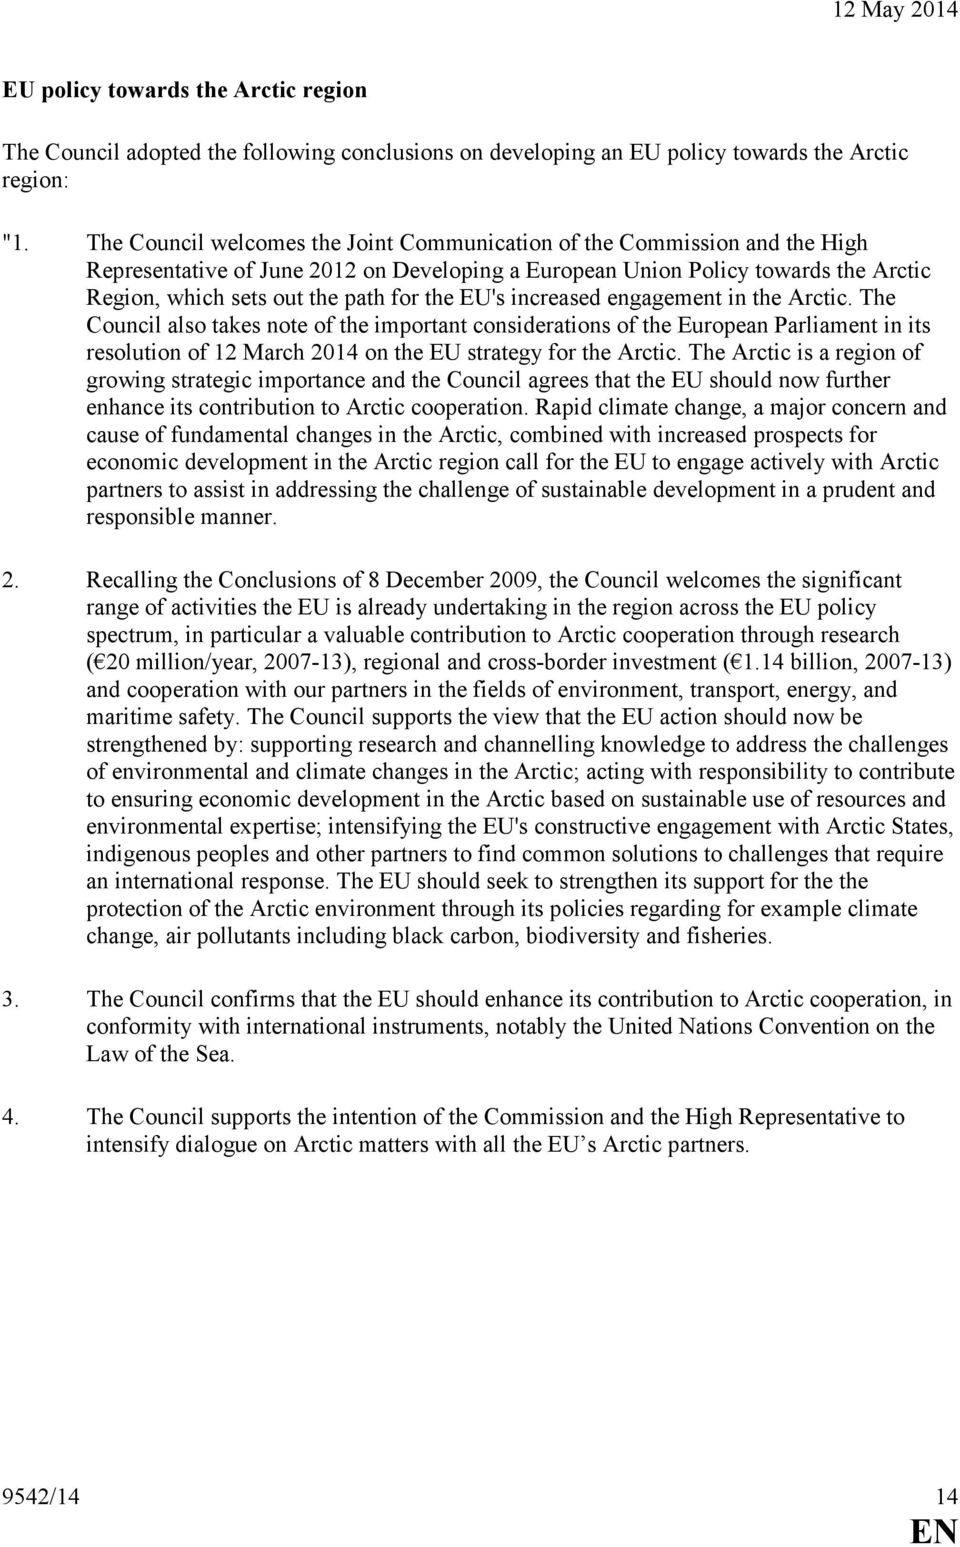 U's increased engagement in the Arctic. The Council also takes note of the important considerations of the uropean Parliament in its resolution of 12 March 2014 on the U strategy for the Arctic.